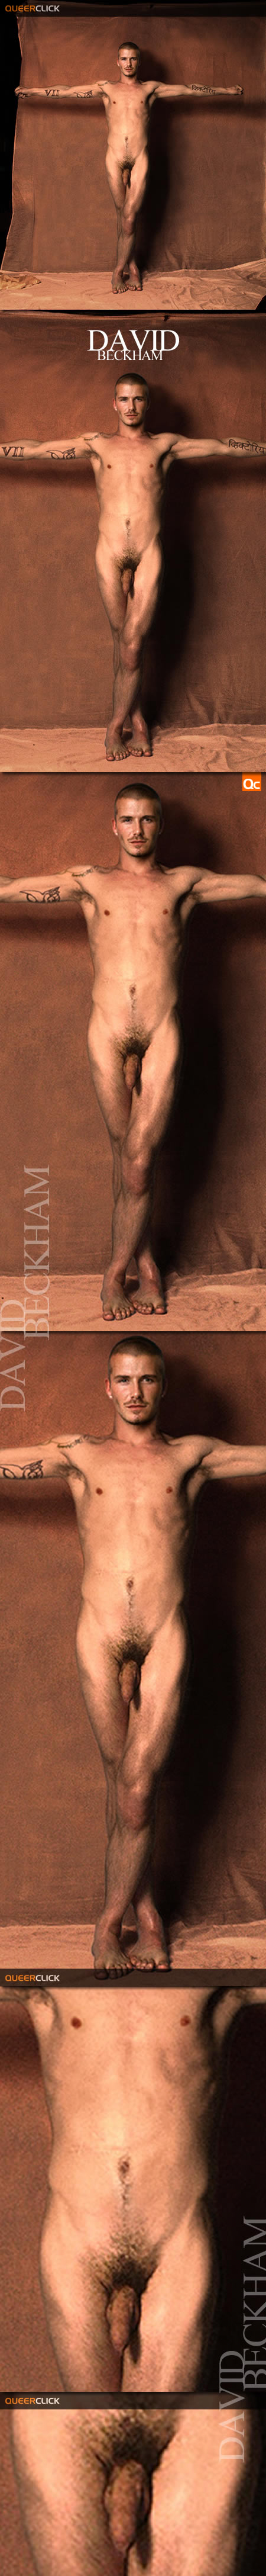 David Beckham Frontal Nude